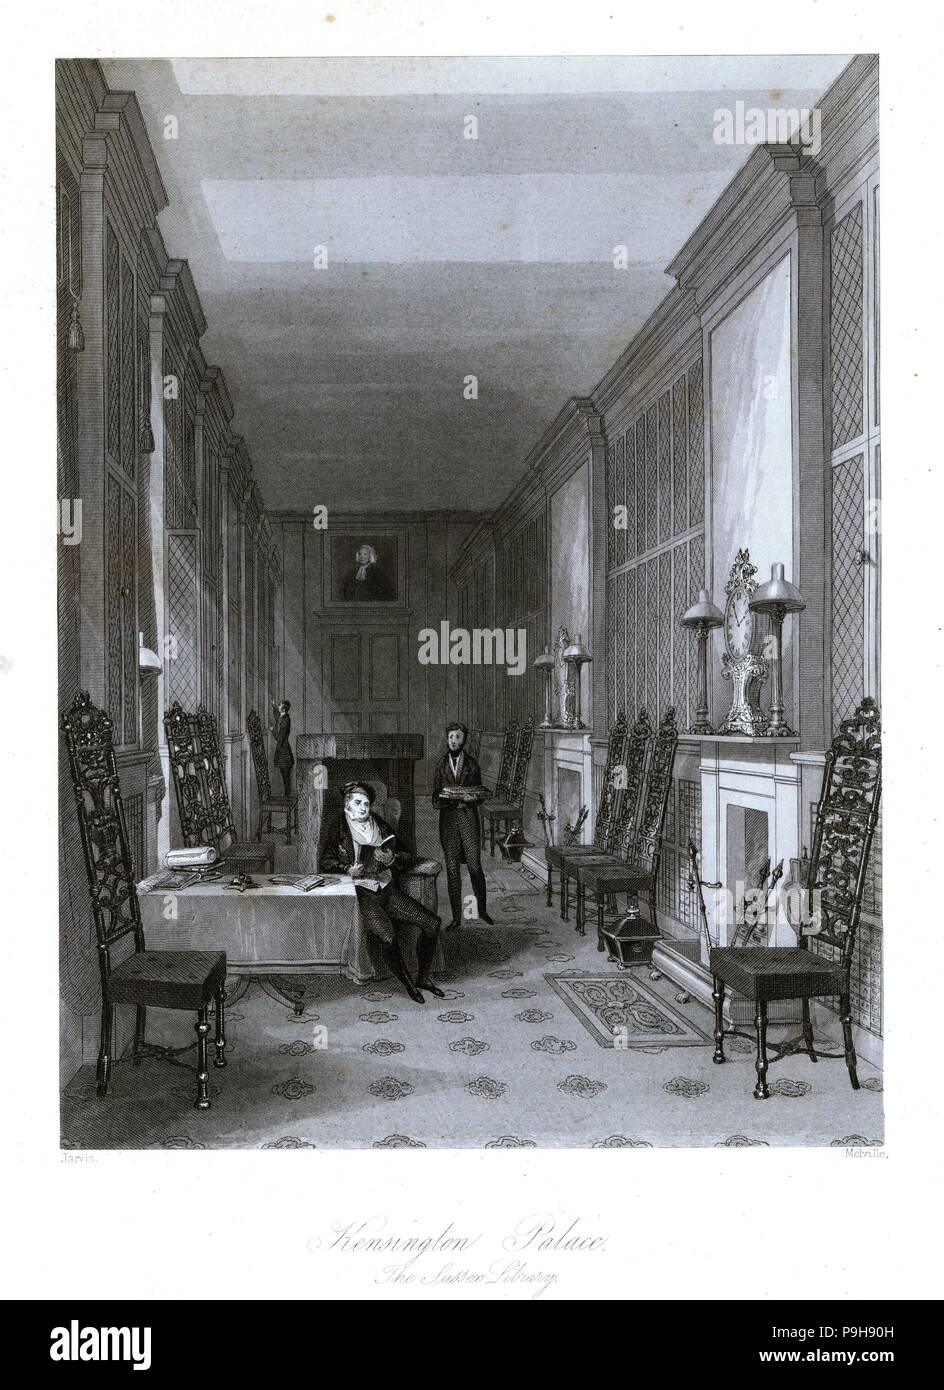 The Sussex Library in Kensington Palace. Steel engraving by Henry Melville after an illustration by Jarvis from London Interiors, Their Costumes and Ceremonies, Joshua Mead, London, 1841. - Stock Image